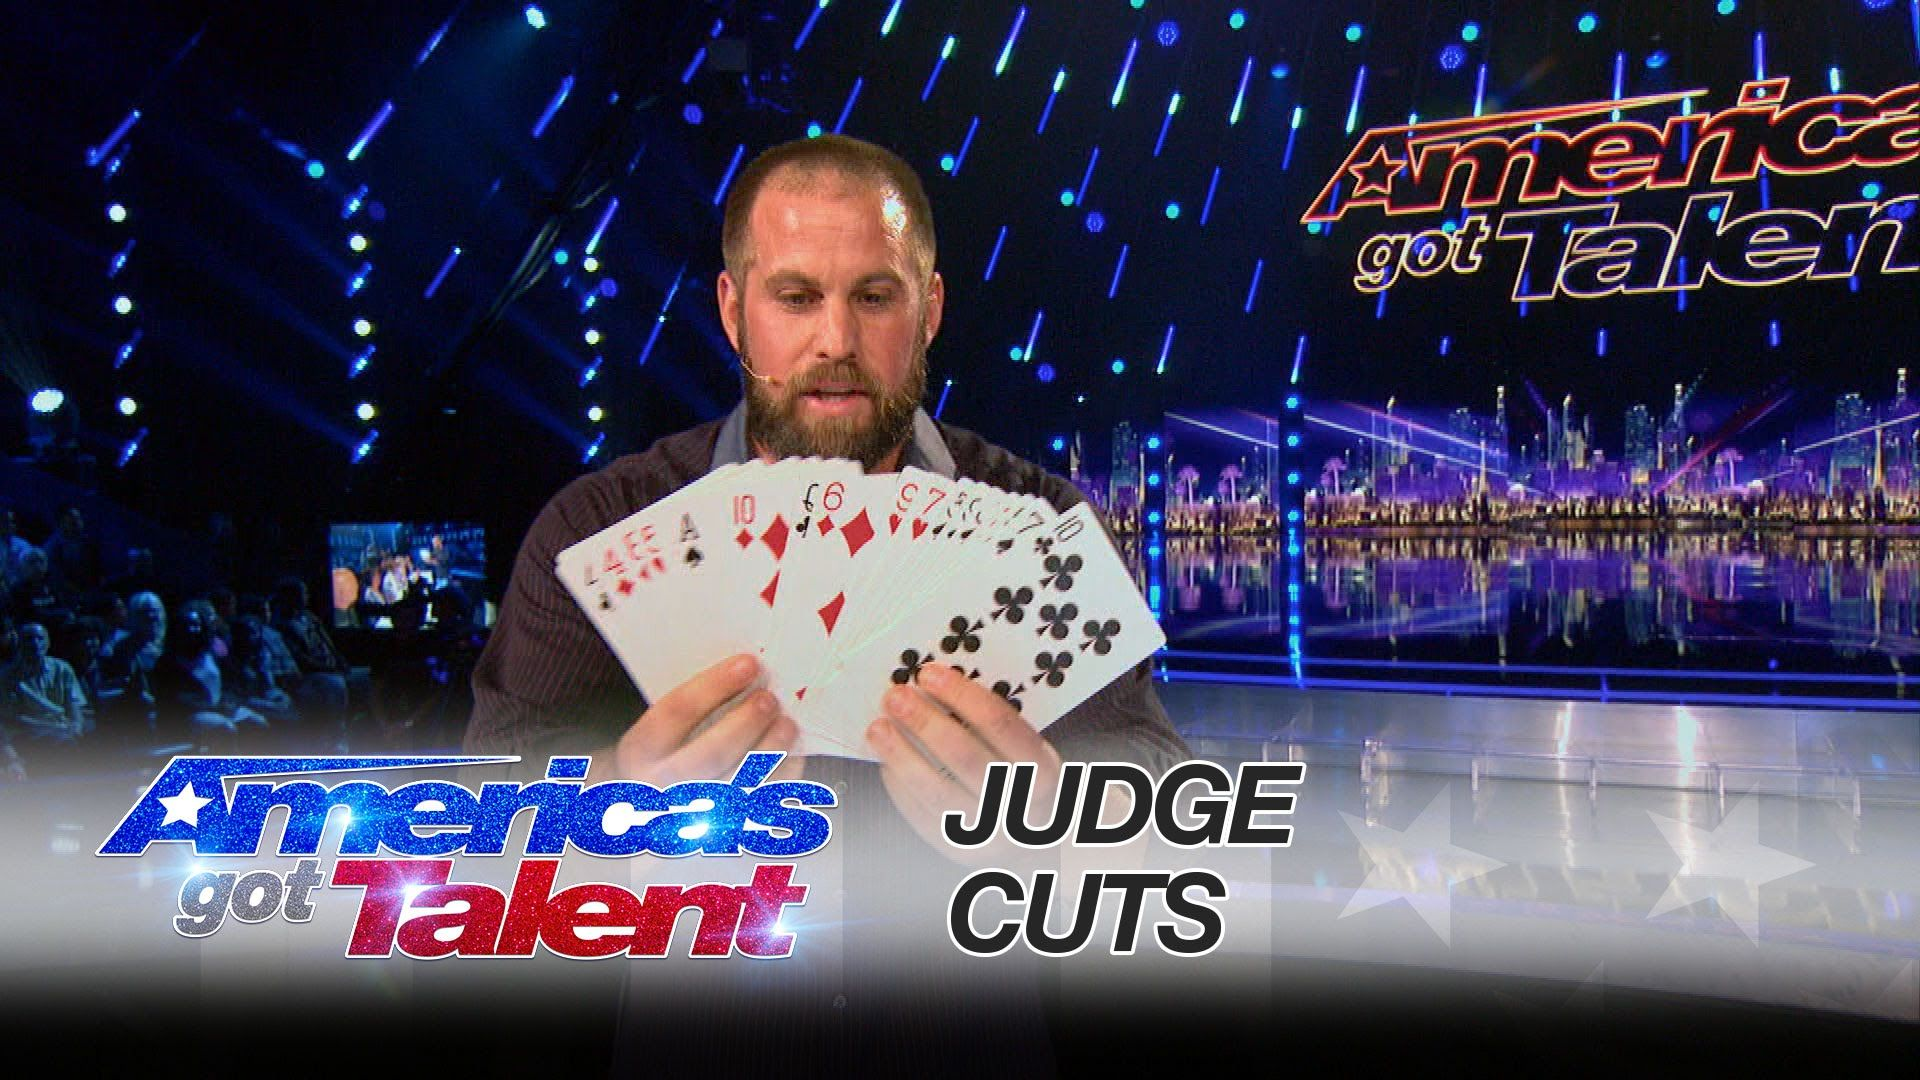 Americas got talent 2017 guest judges - The Philadelphia Eagles Long Hiker Uses Magic To Escape From The Stress And Hard Times In America S Got Talentmagic